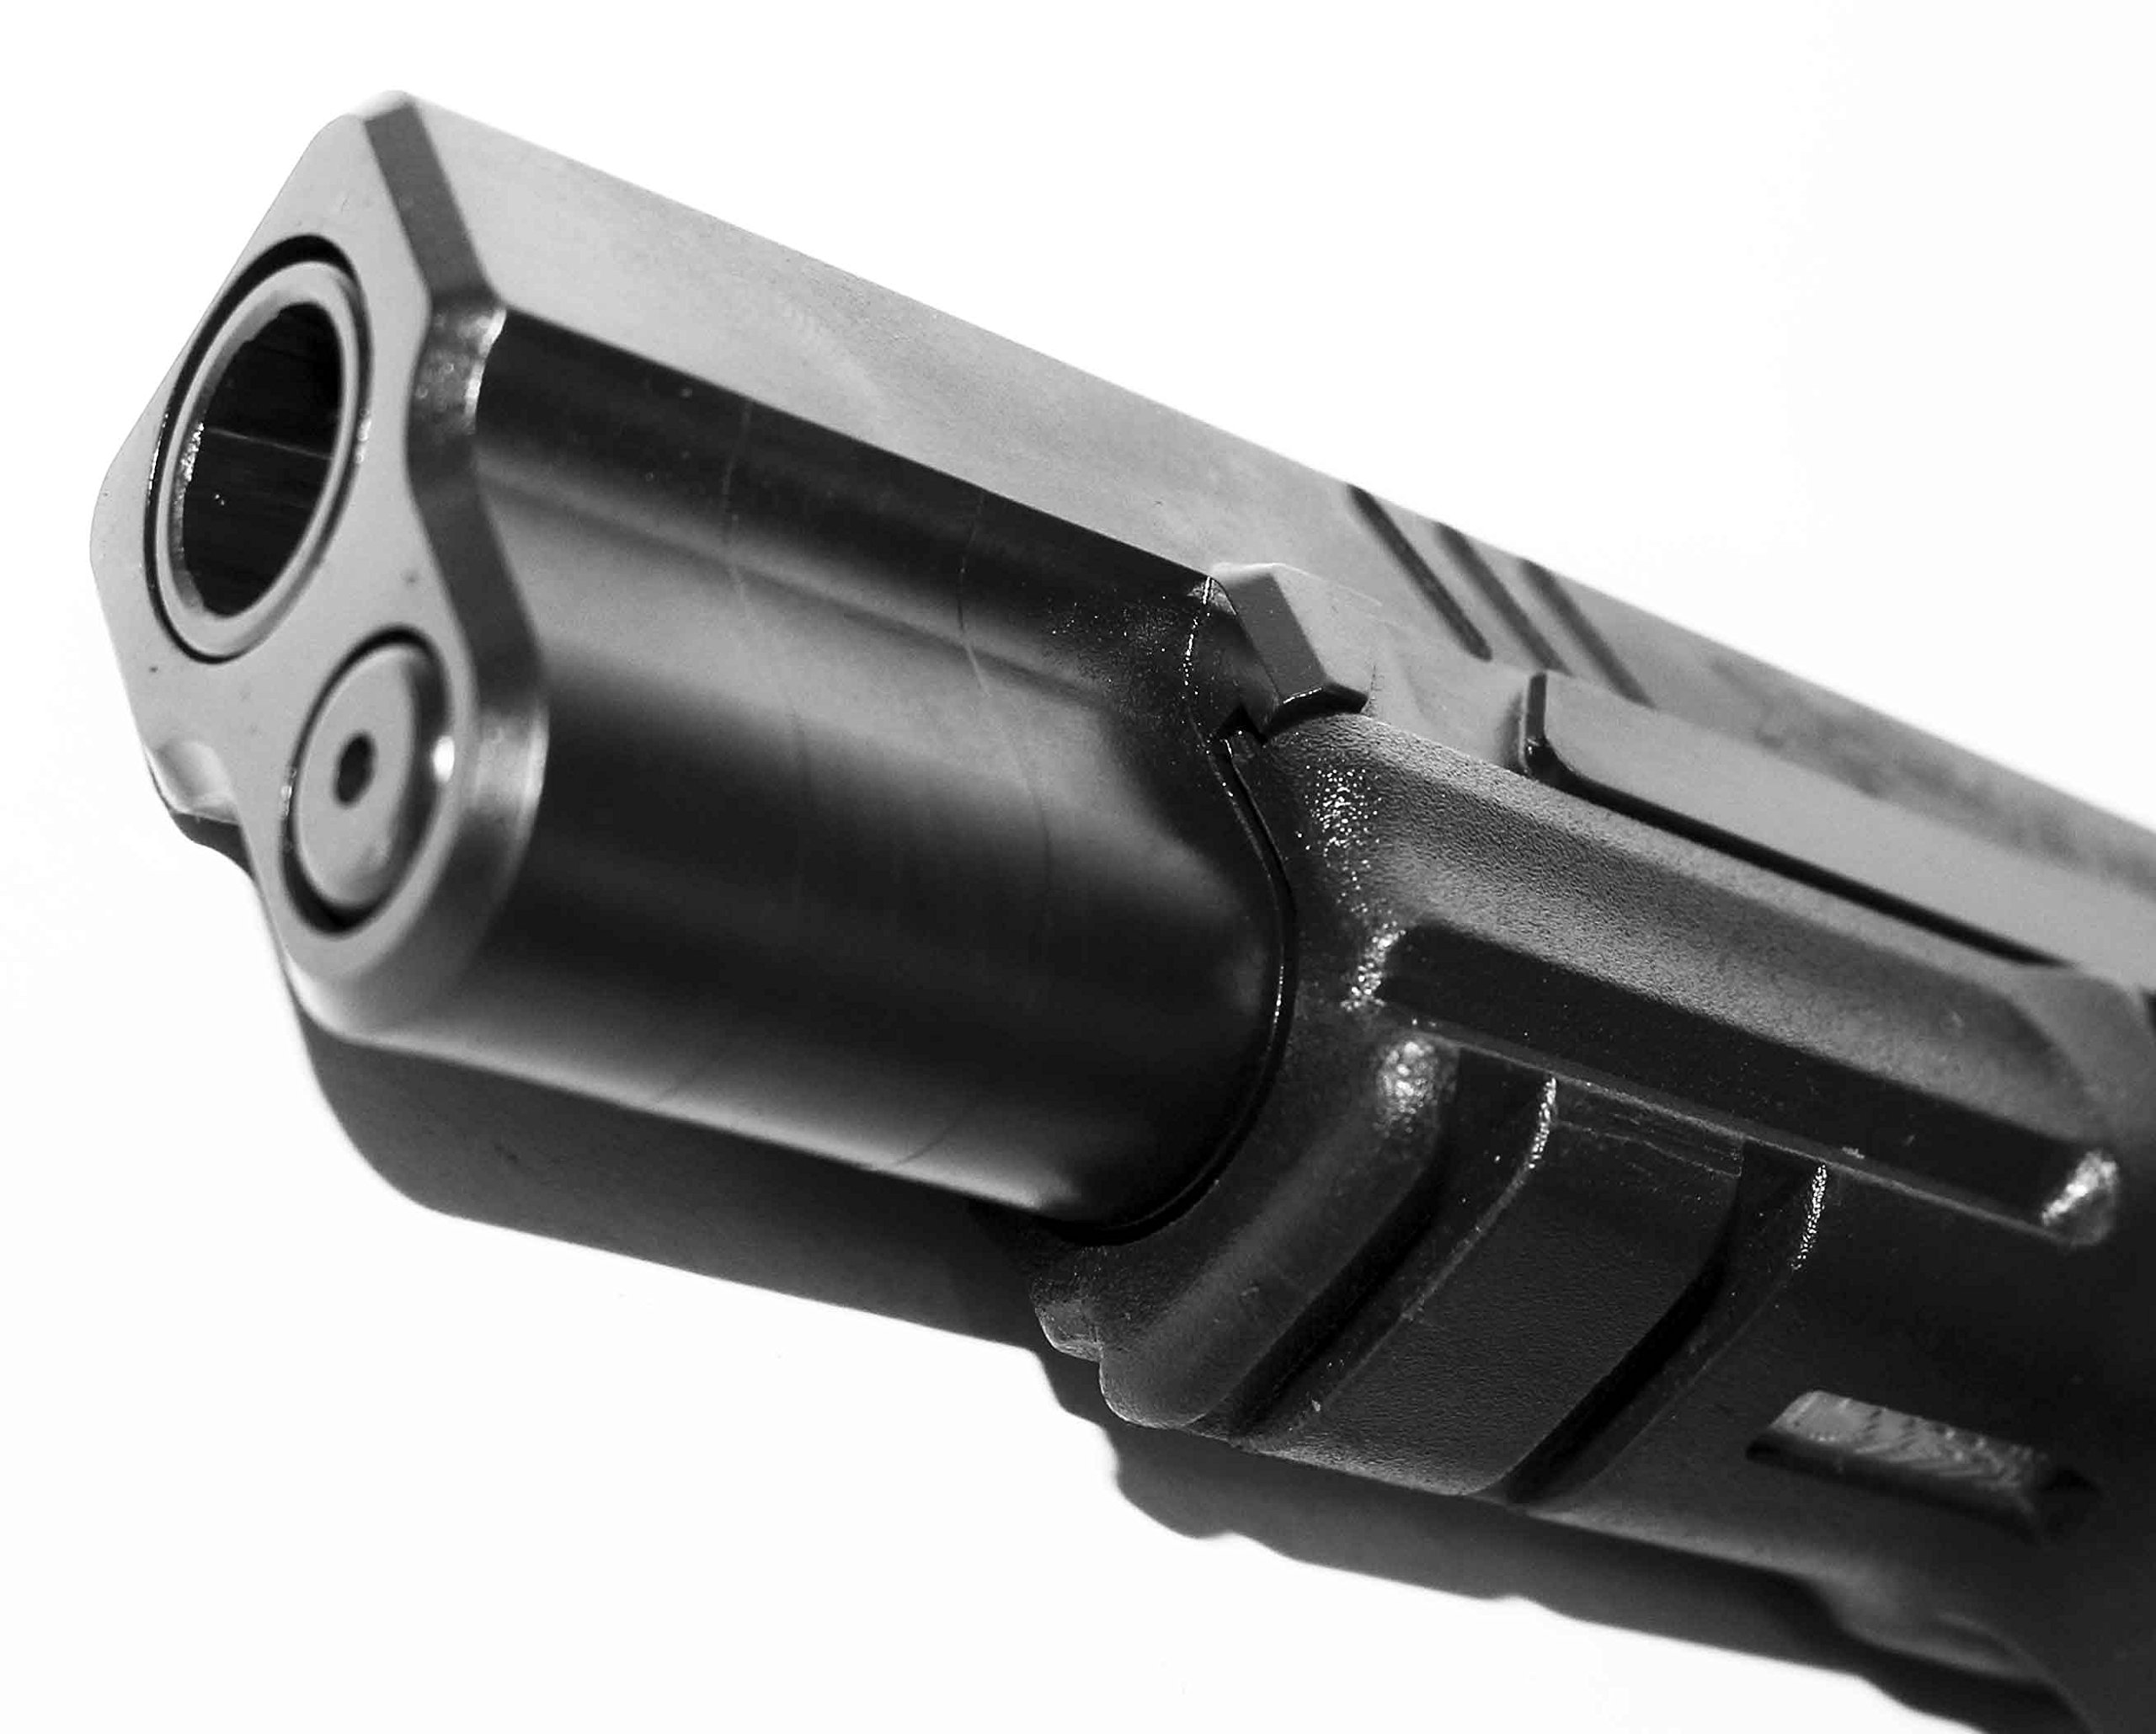 TRINITY Weaver Mounted RED dot Sight For GLOCK 23 gen4, Class IIIa 635nM Less Than 5mW